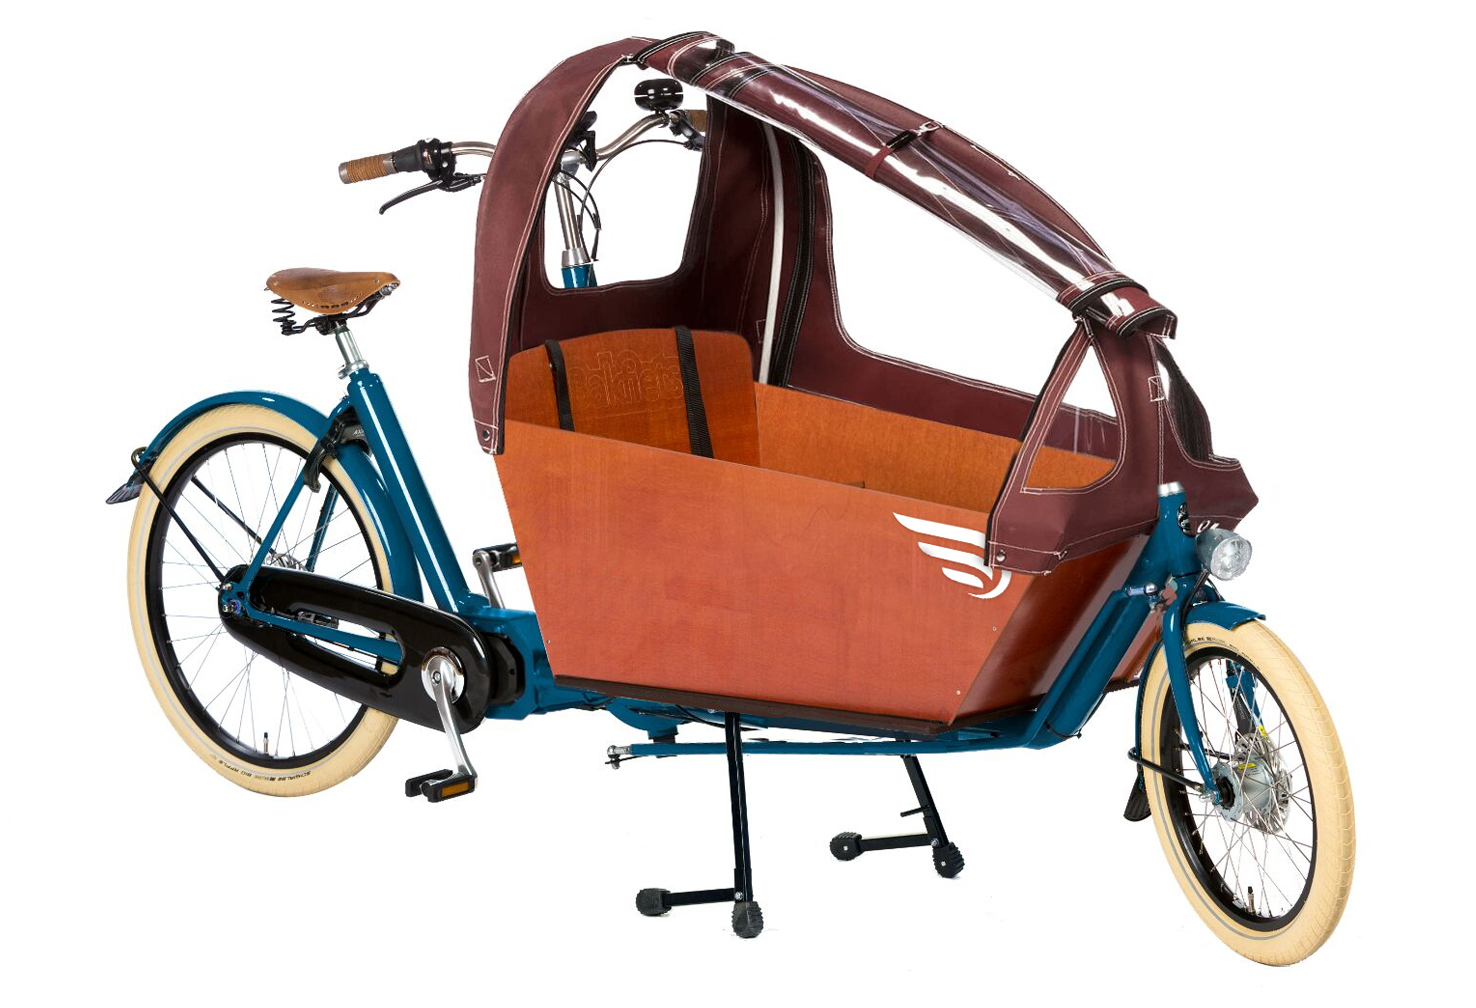 Biporteur Bakfiets Confort Steps pour showroom de paris